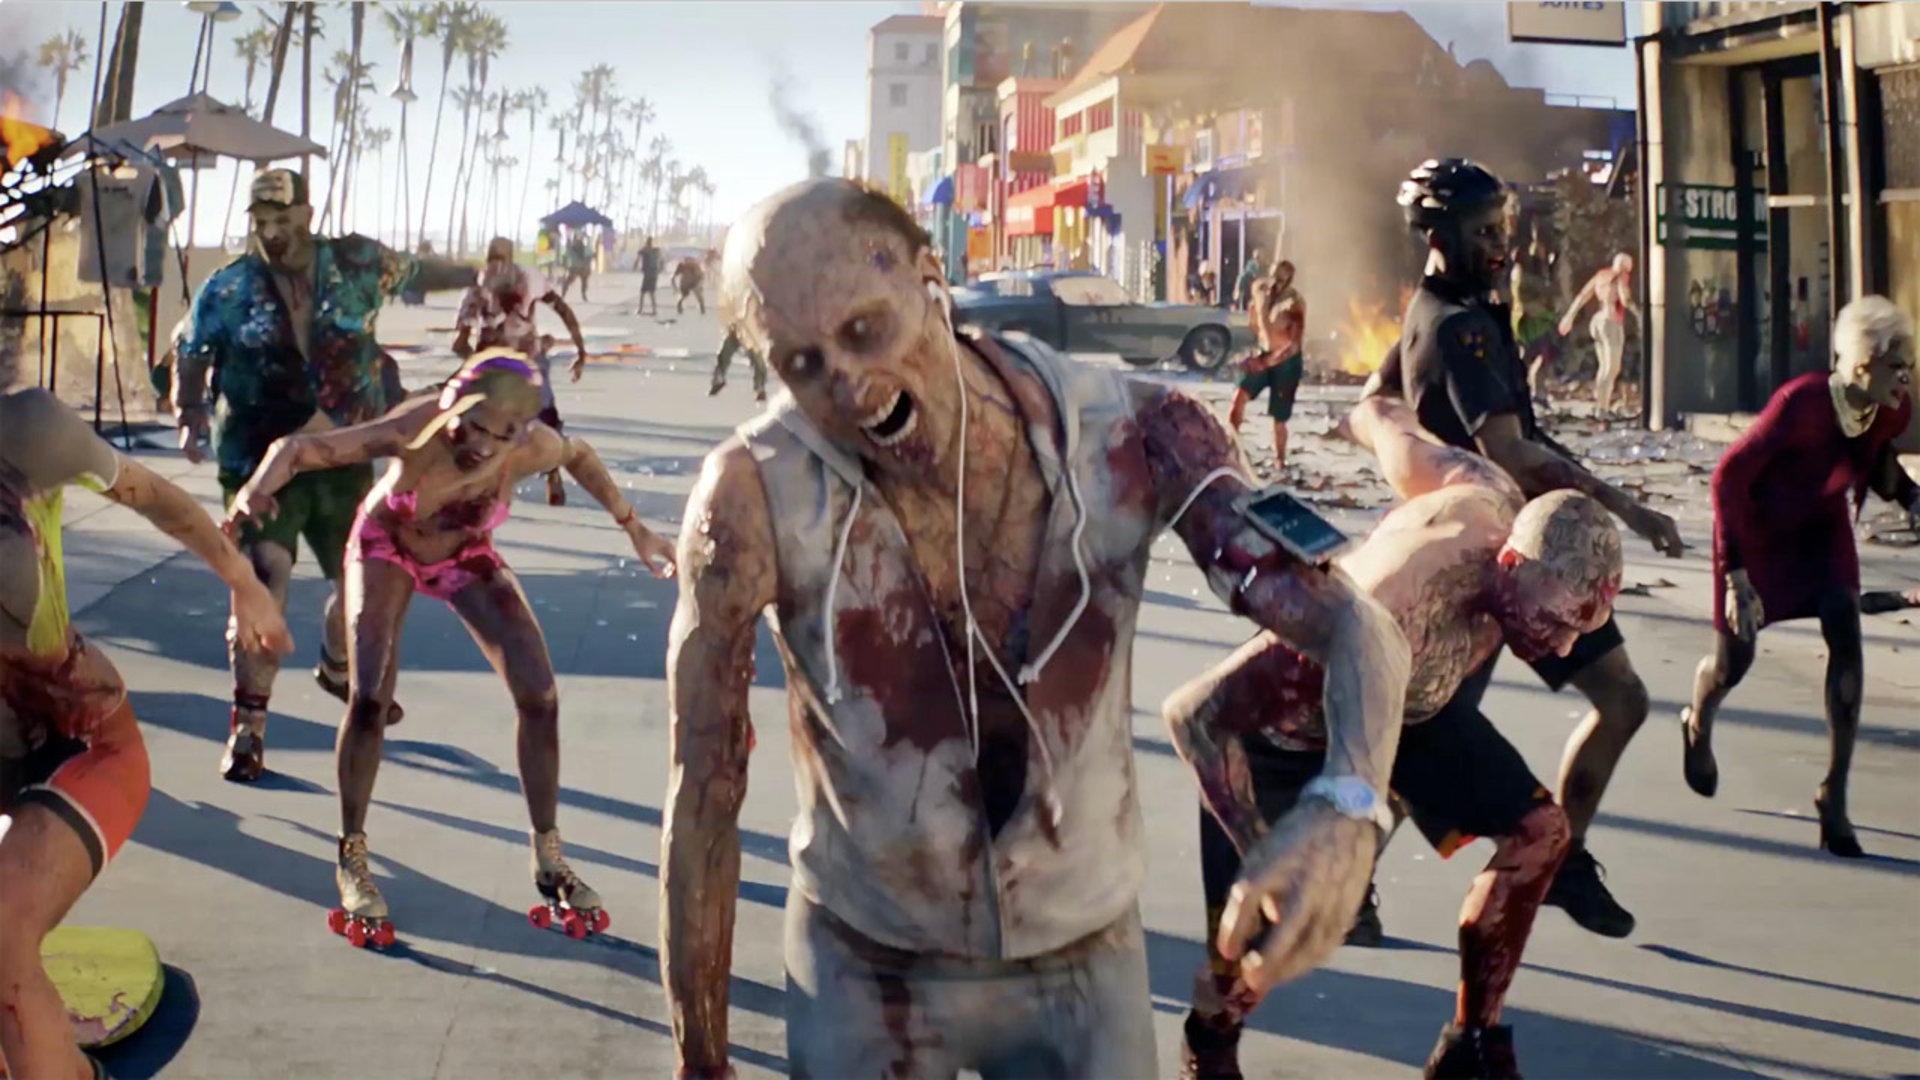 """Dead Island 2"" Delayed to 2016 - Wanted to Improve Quality"